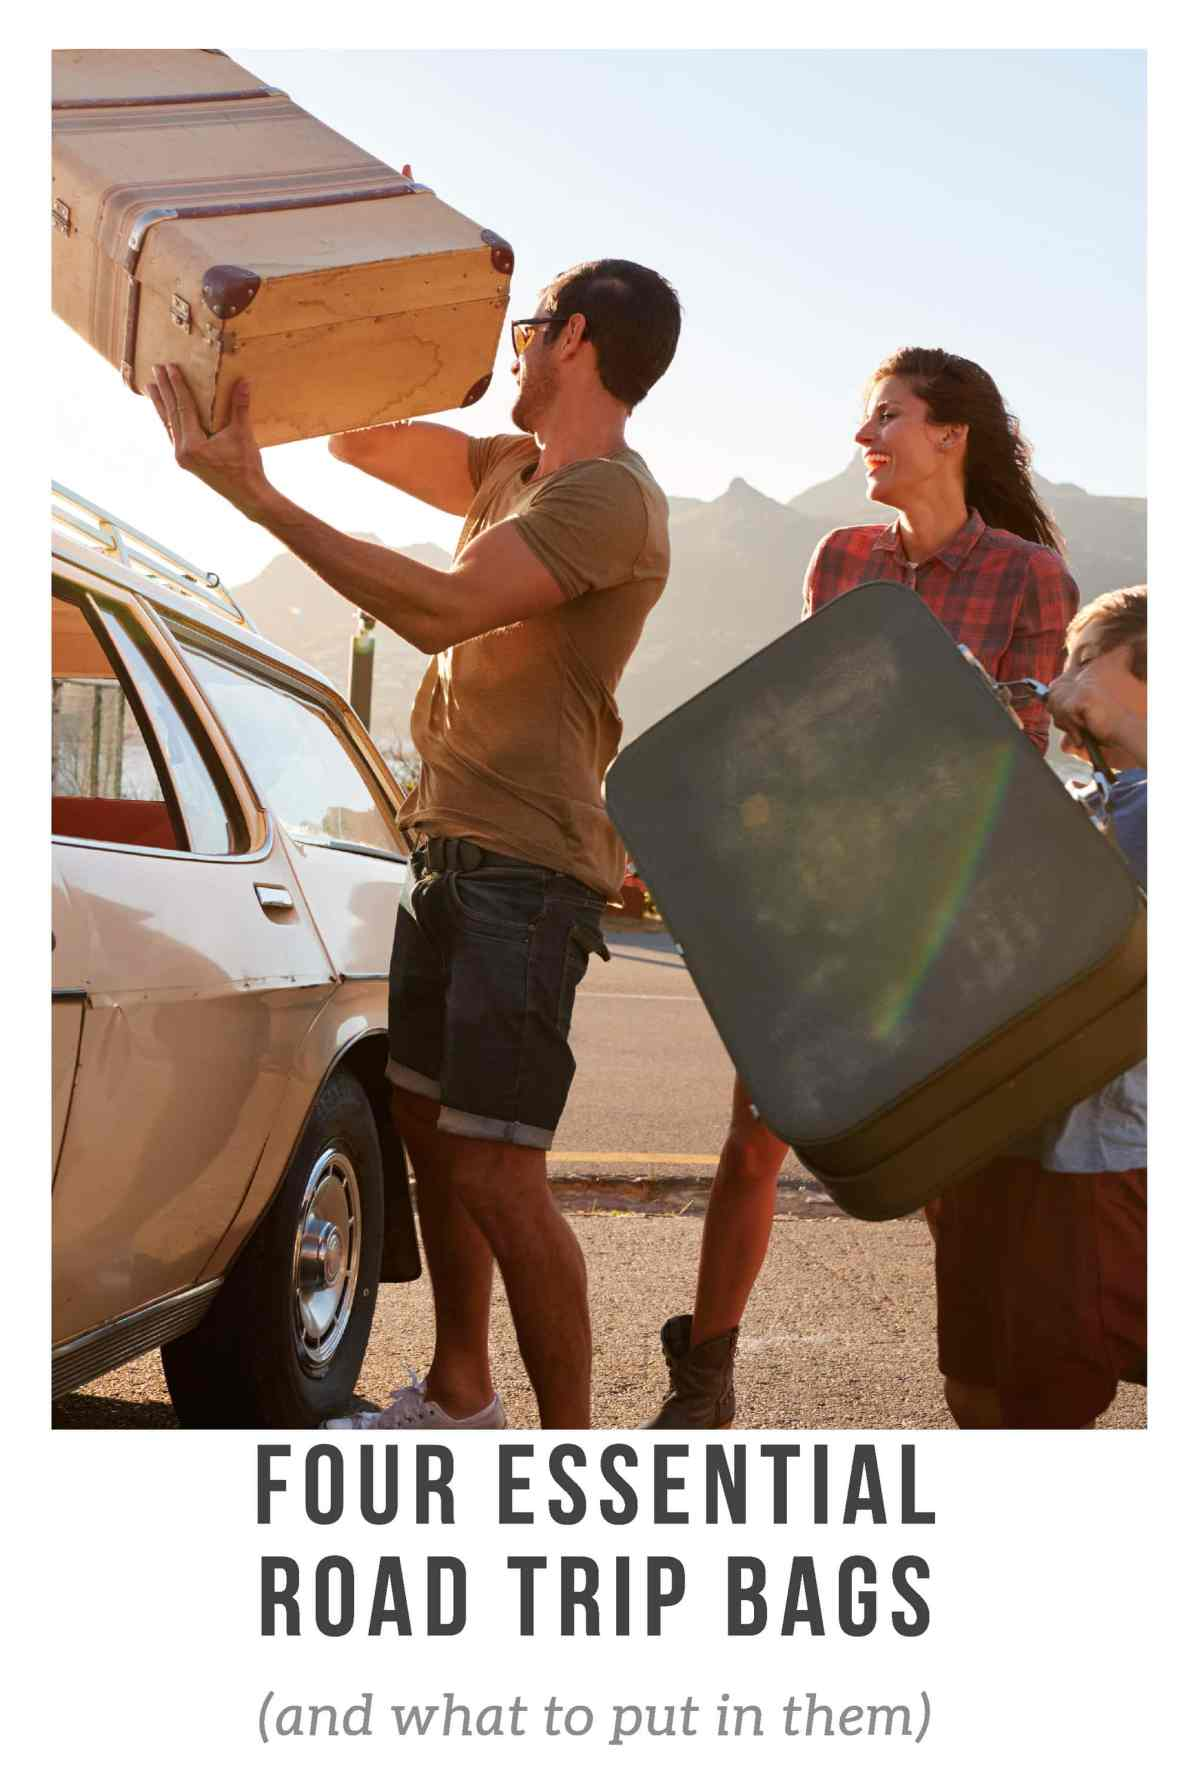 Four Essential Road Trip Bags (and what to put in them) -- There are three or four essential road trip bags every traveler should have in their car. Here's what they are, what to put in them, and where to keep them.